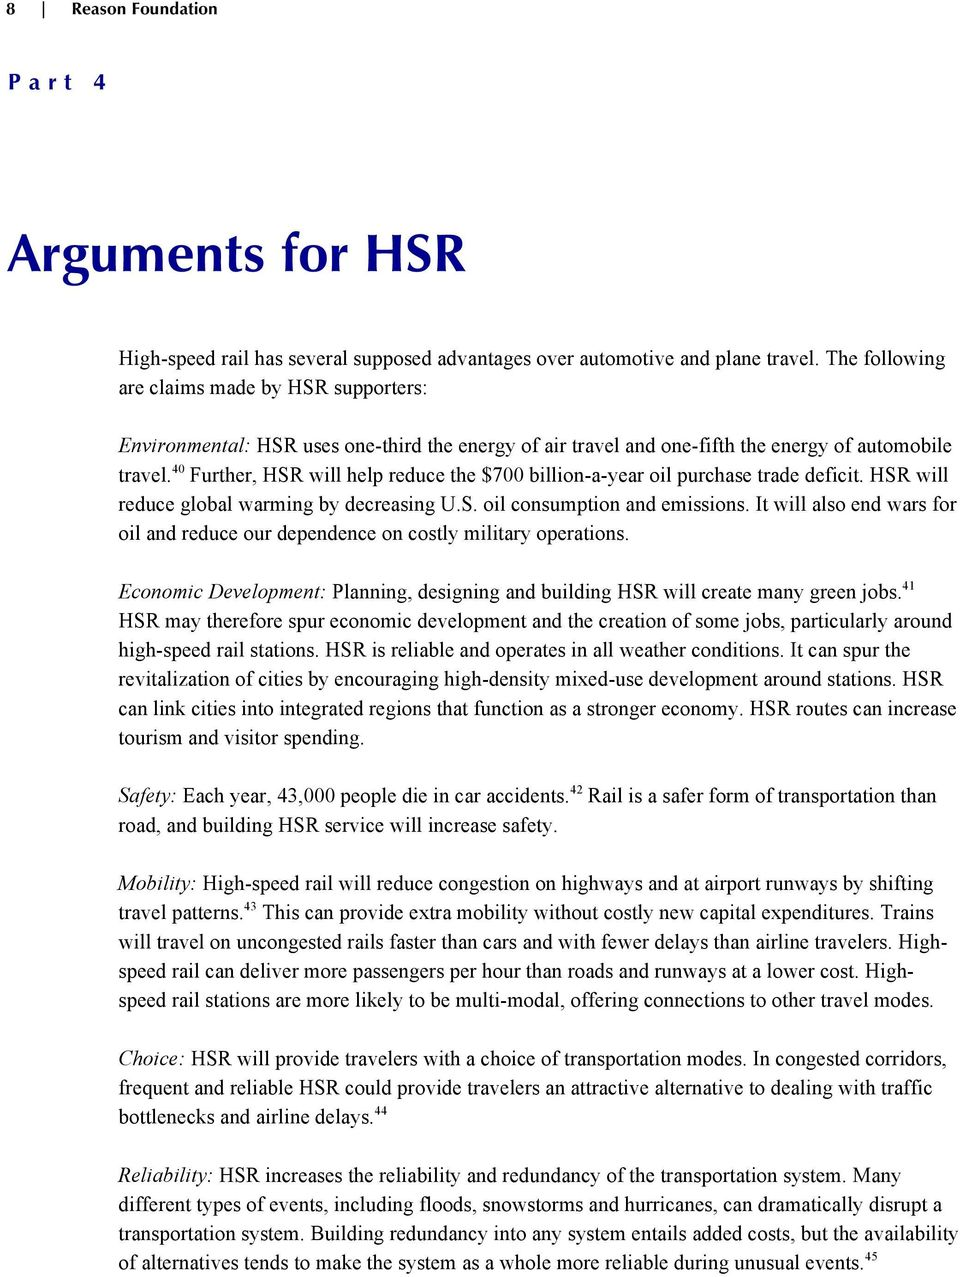 40 Further, HSR will help reduce the $700 billion-a-year oil purchase trade deficit. HSR will reduce global warming by decreasing U.S. oil consumption and emissions.